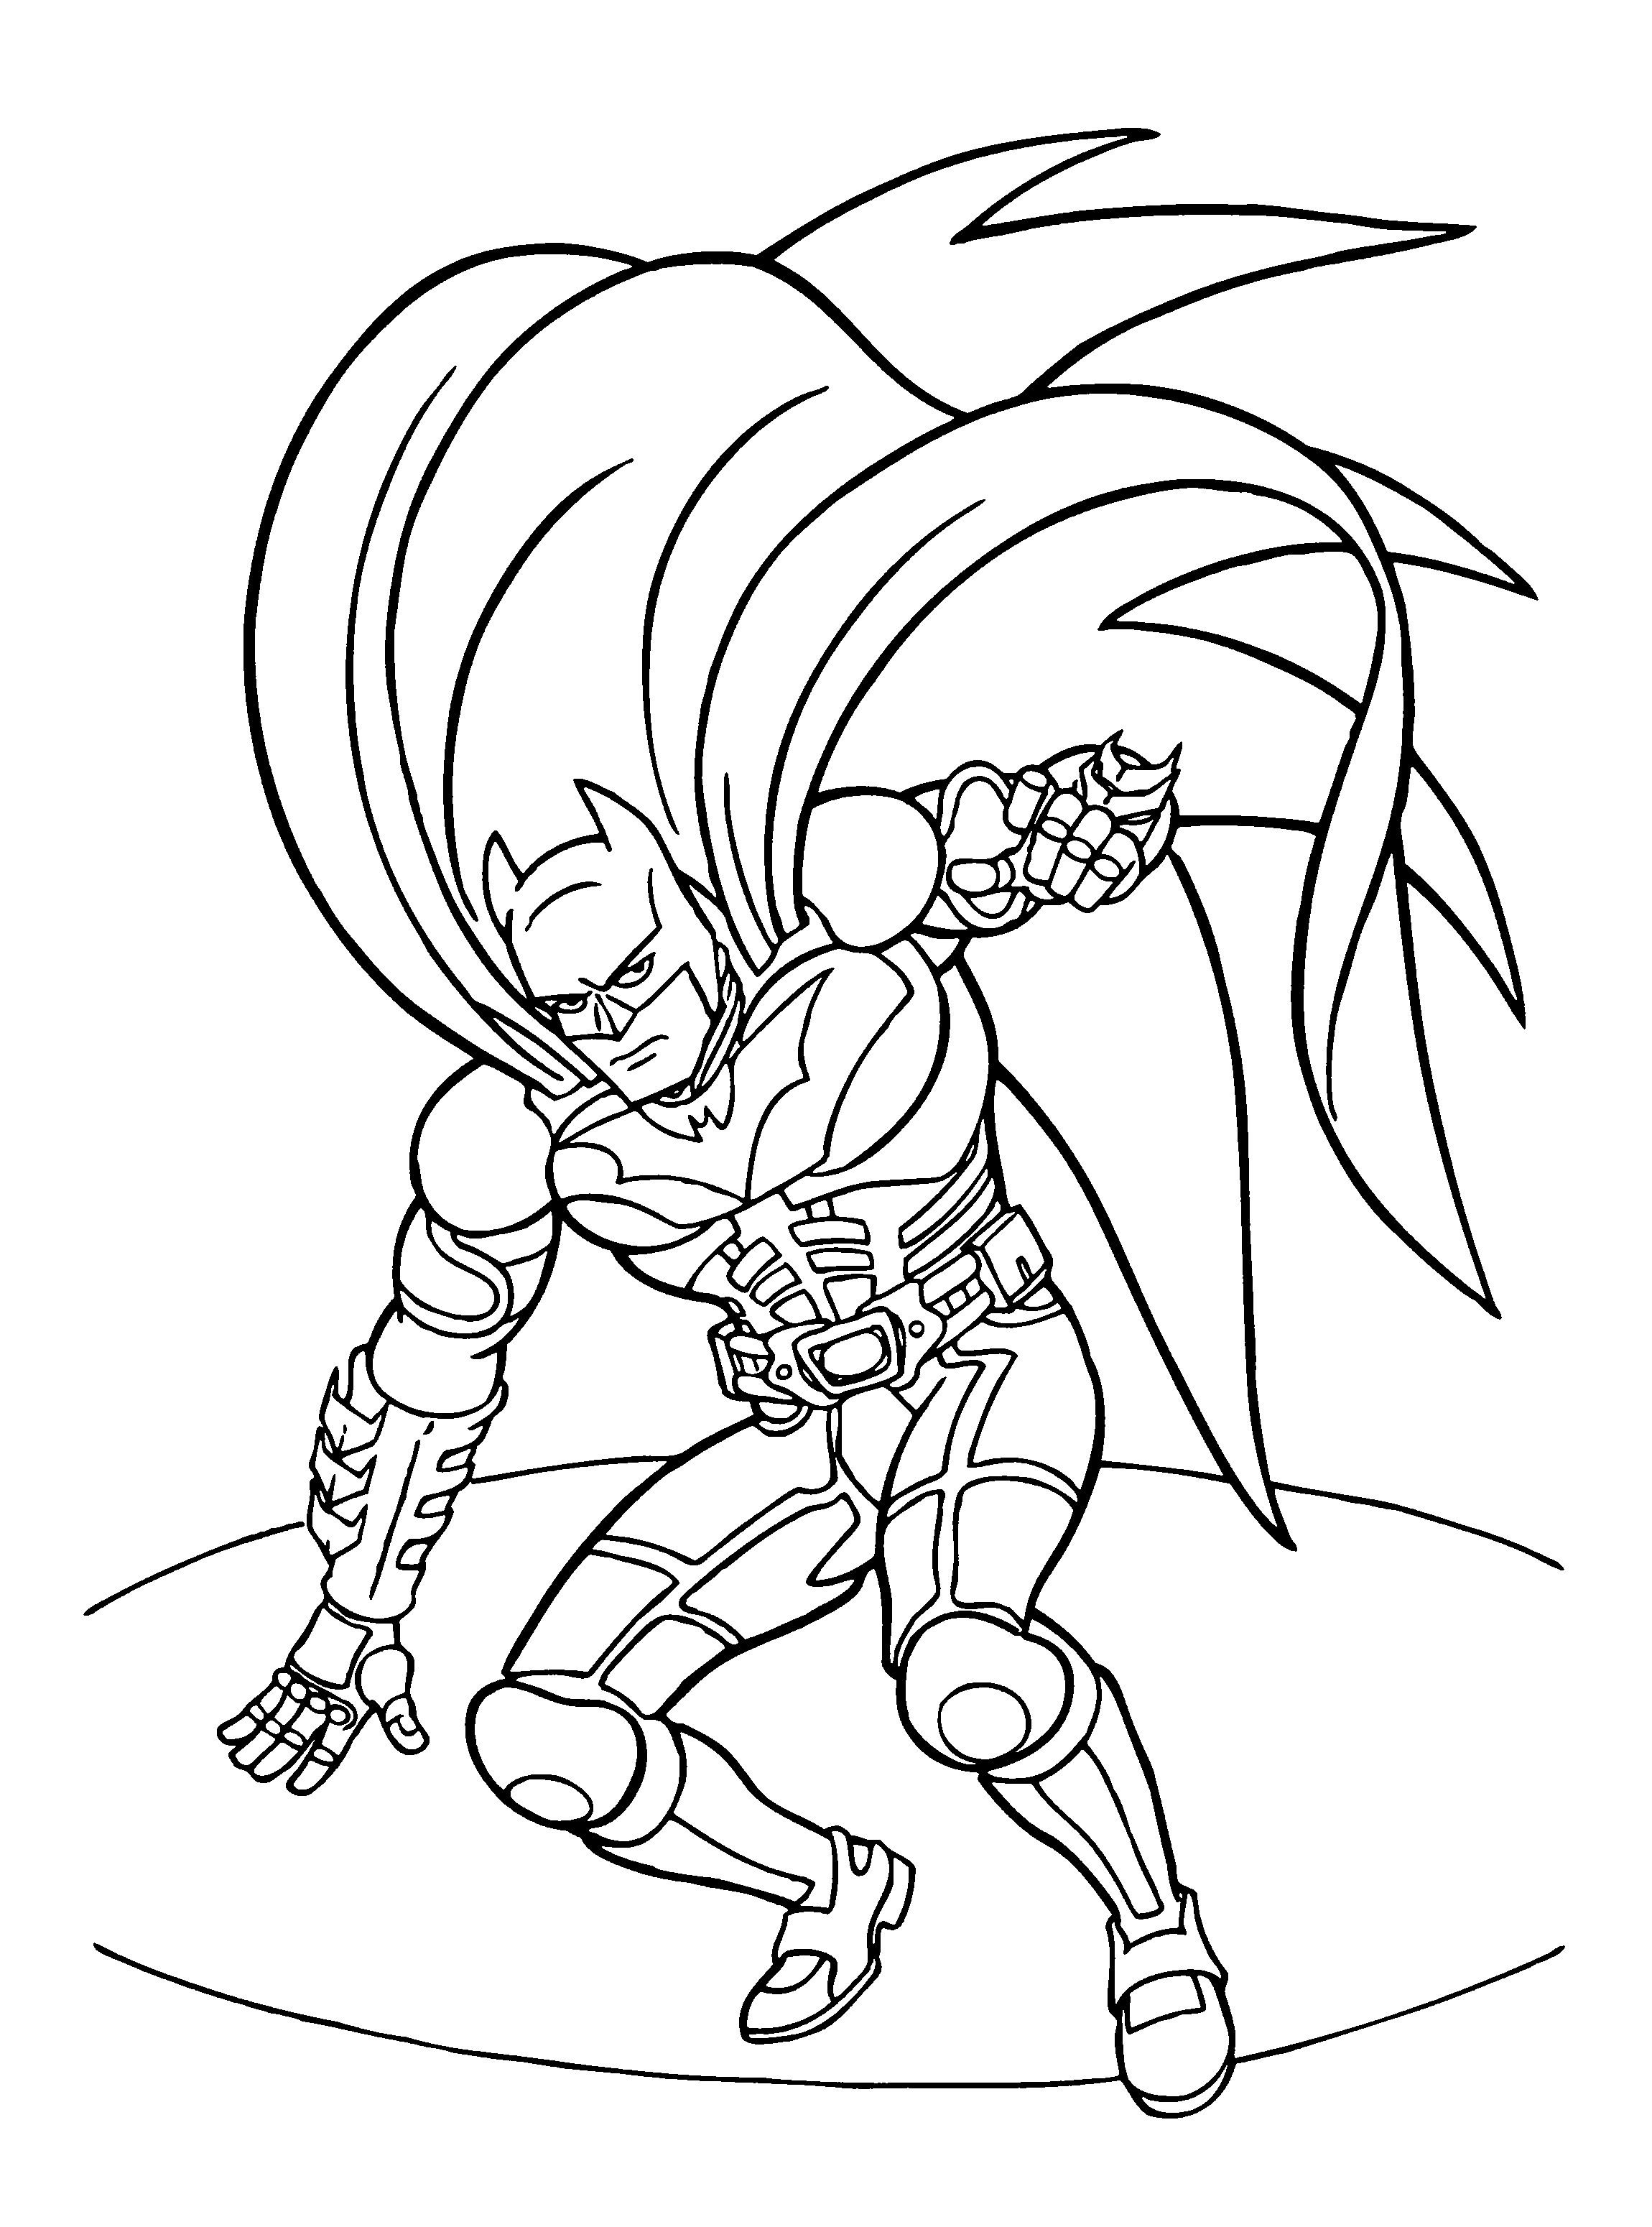 batman coloring pages - kleurplaat book=batman 01&image=batman 01 79 &oms=Batman